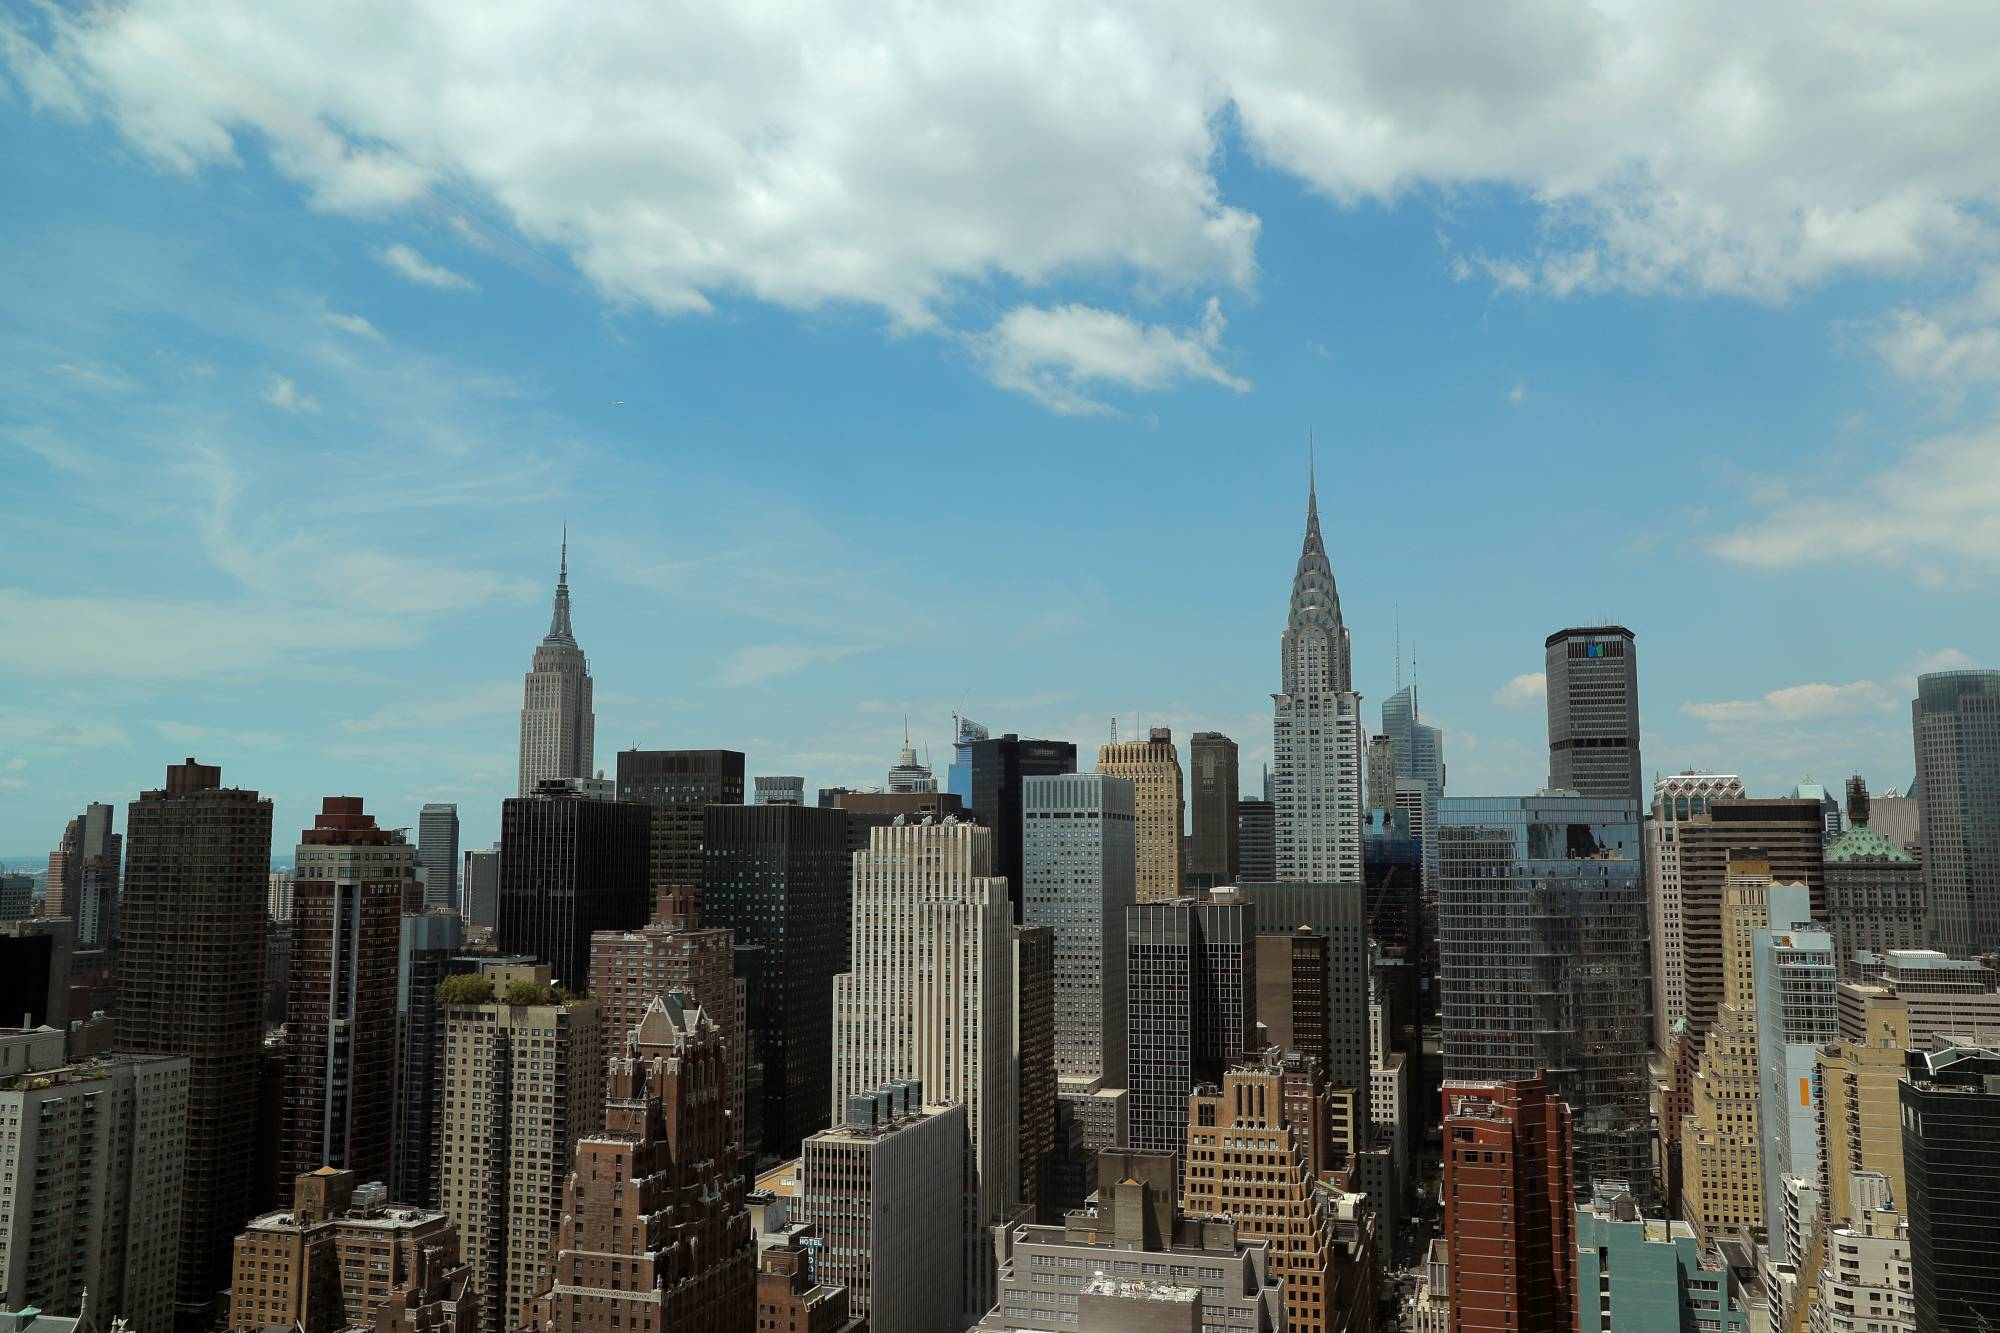 The skyline of midtown Manhattan in New York City as seen from the United Nations headquarters in New York